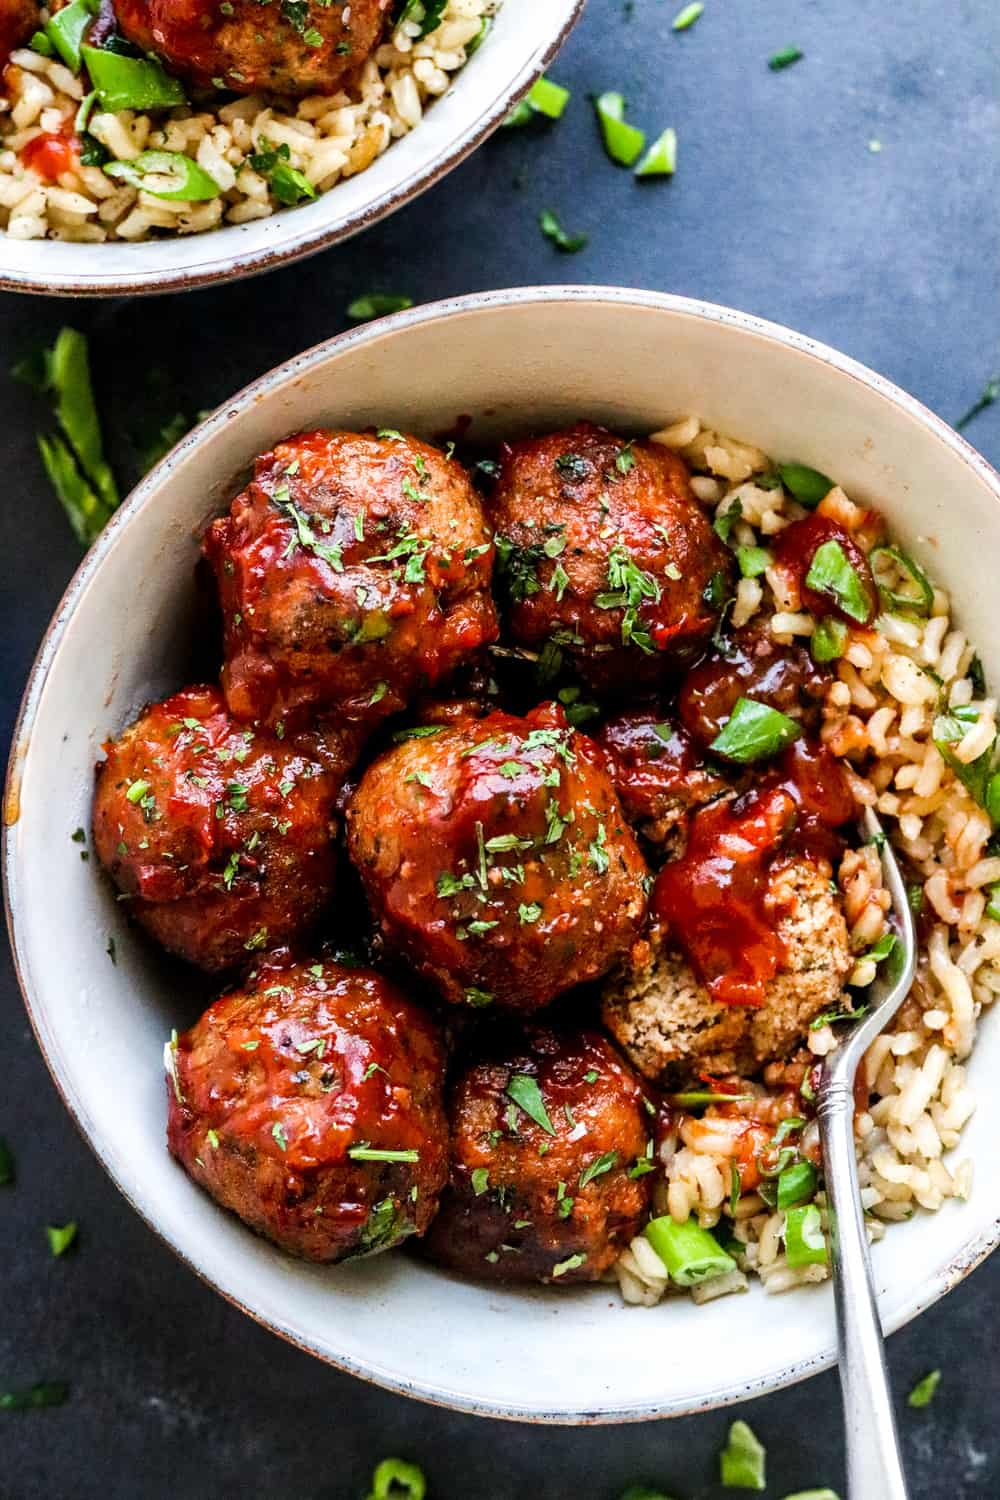 close up of round healthy turkey meatballs covered in chili sauce over cooked brown rice with a fork cutting into one of the meatballs